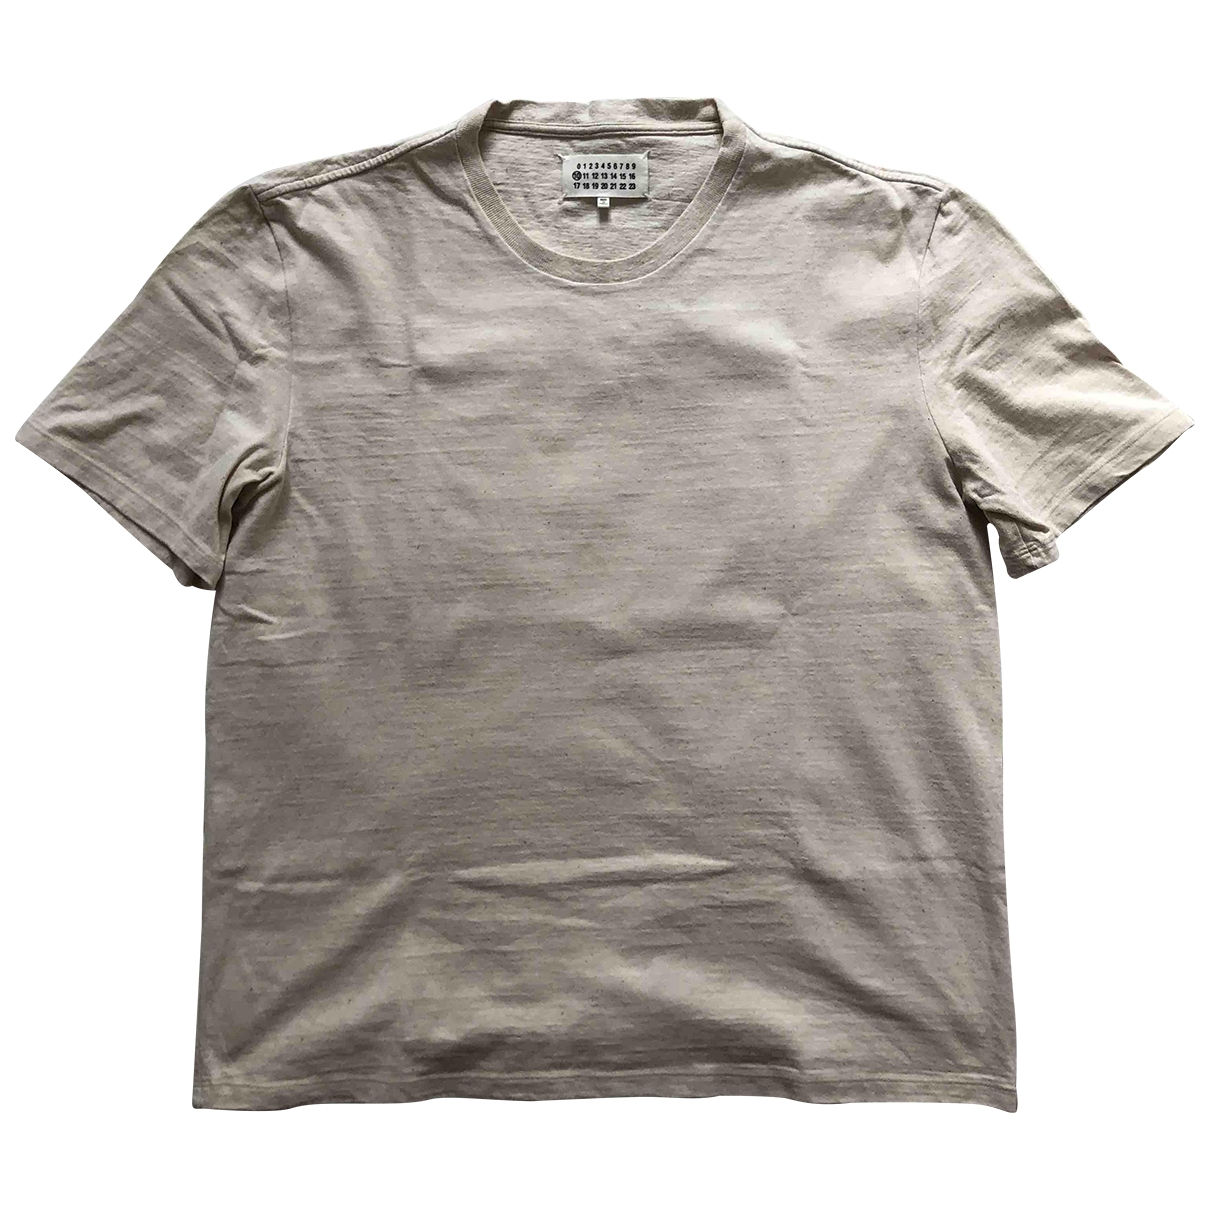 Maison Martin Margiela \N Beige Cotton T-shirts for Men M International